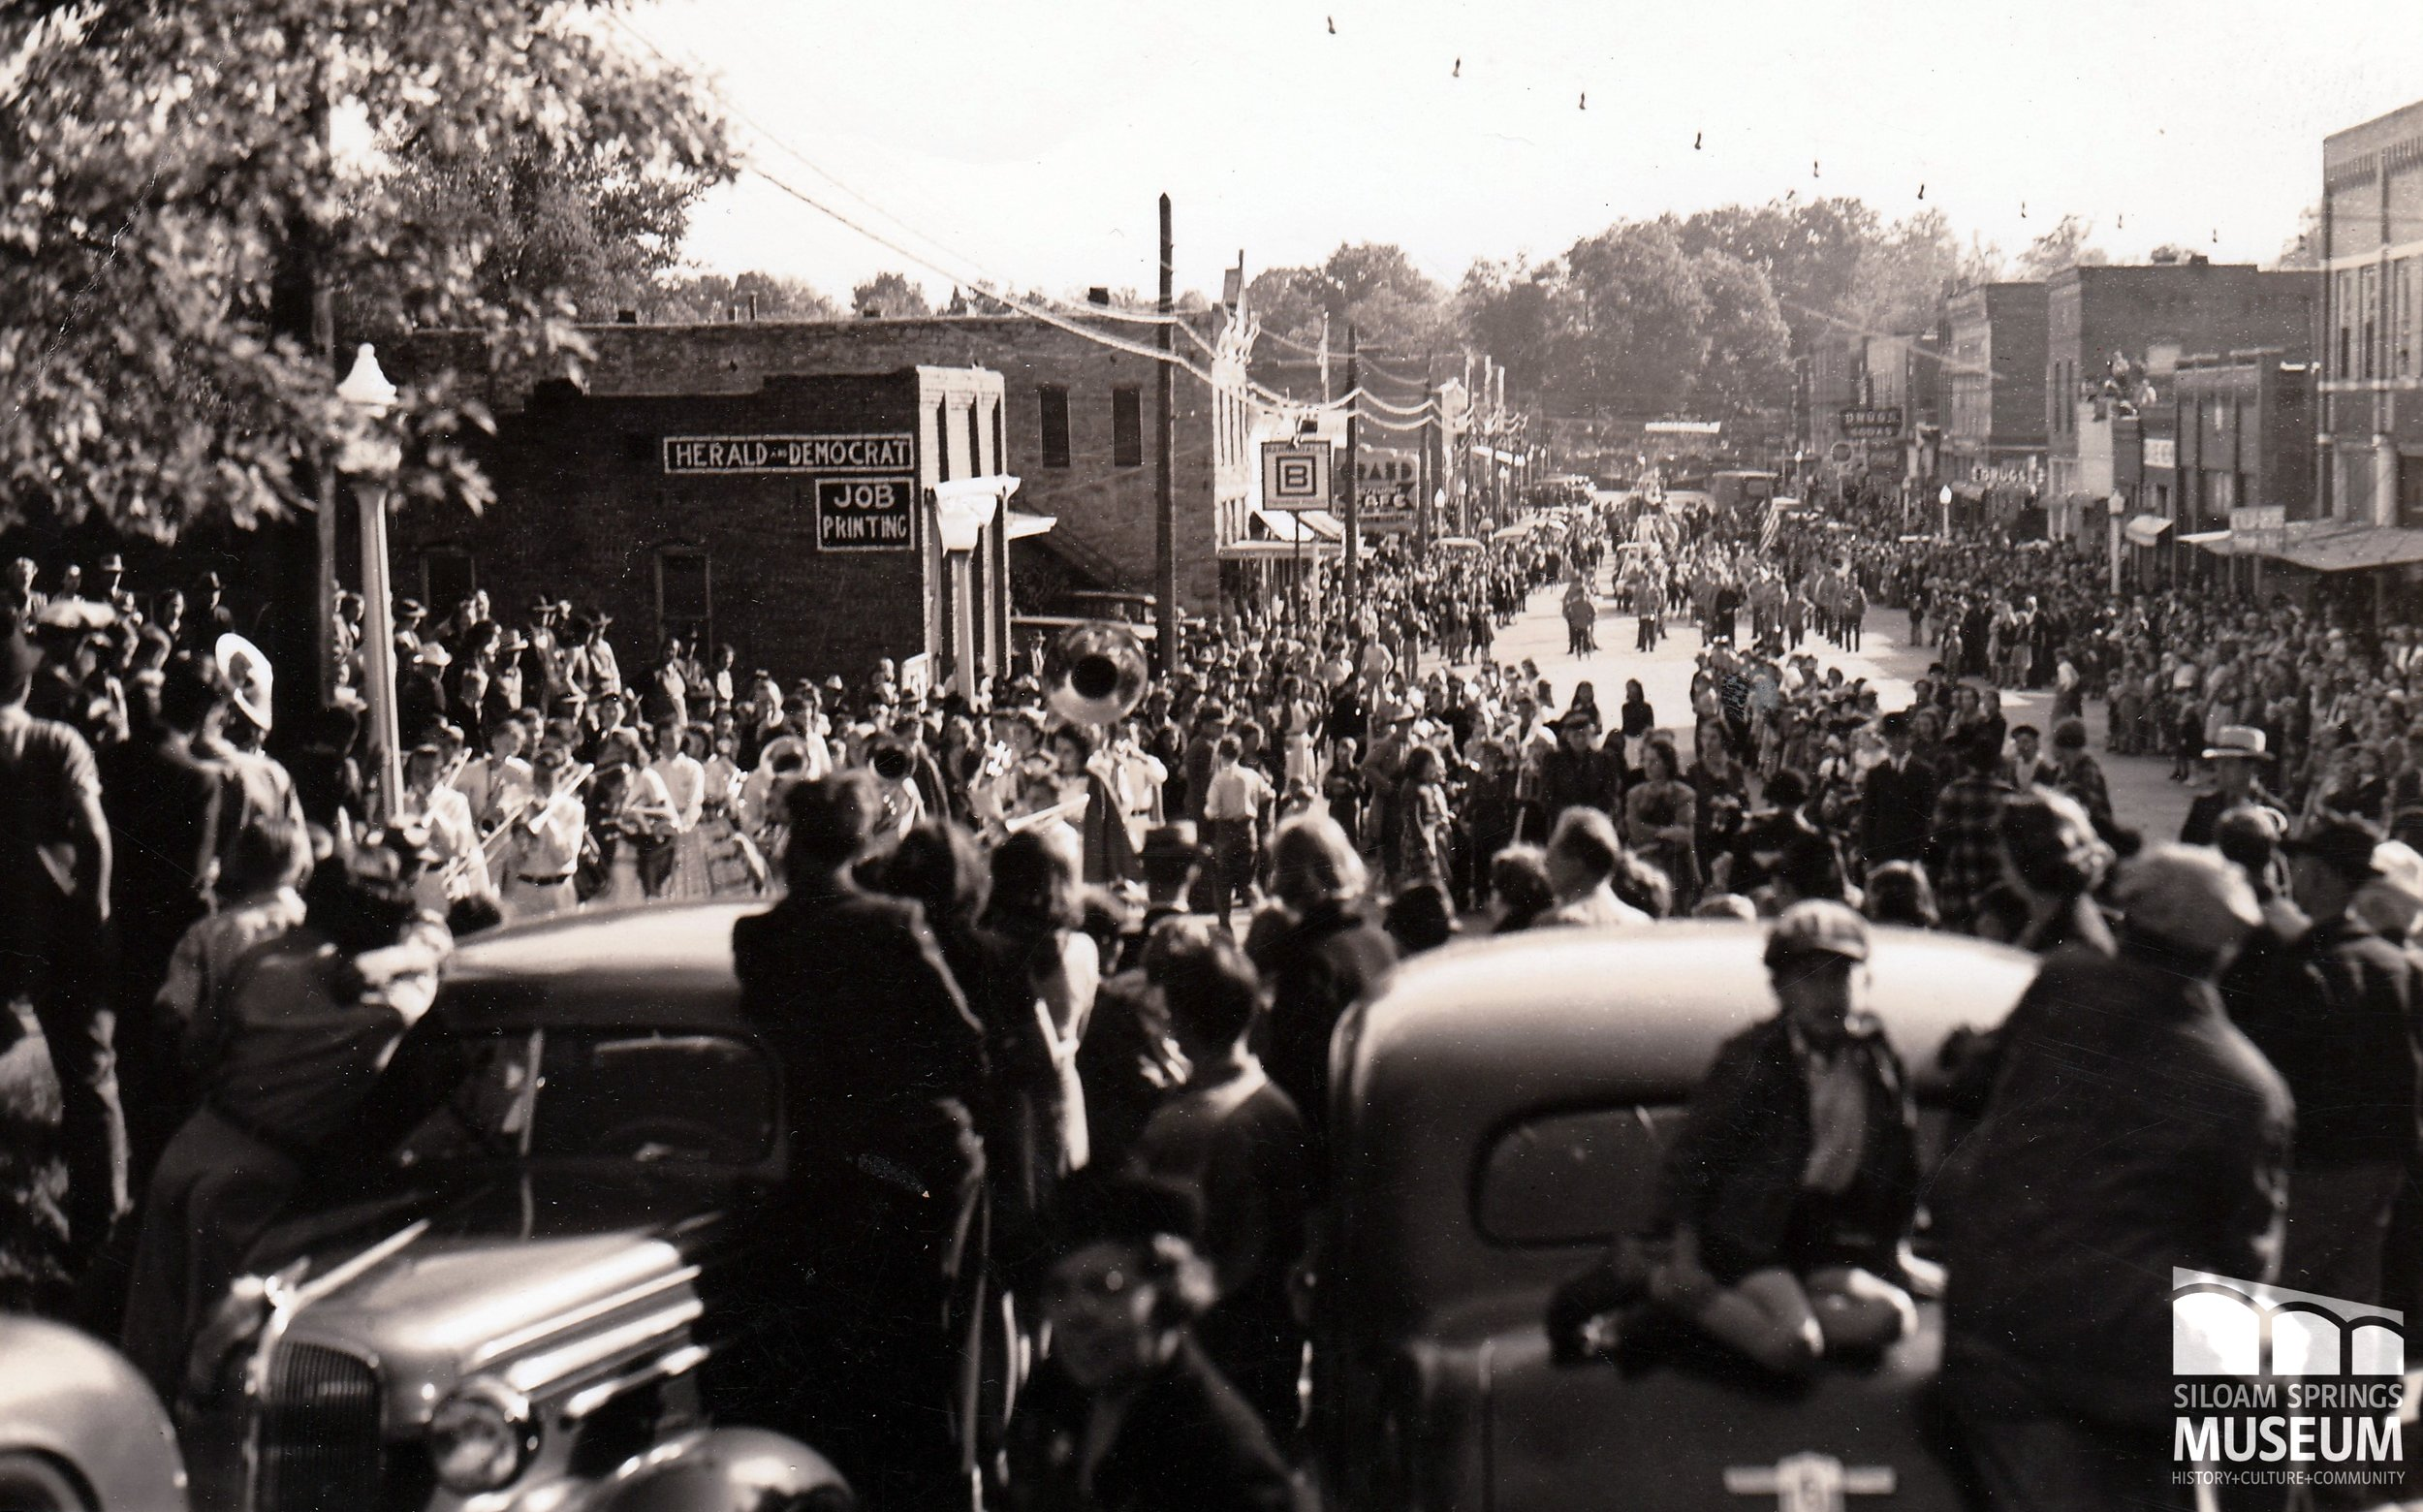 This parade in 1930's Siloam is possibly a St. John's Day celebration.